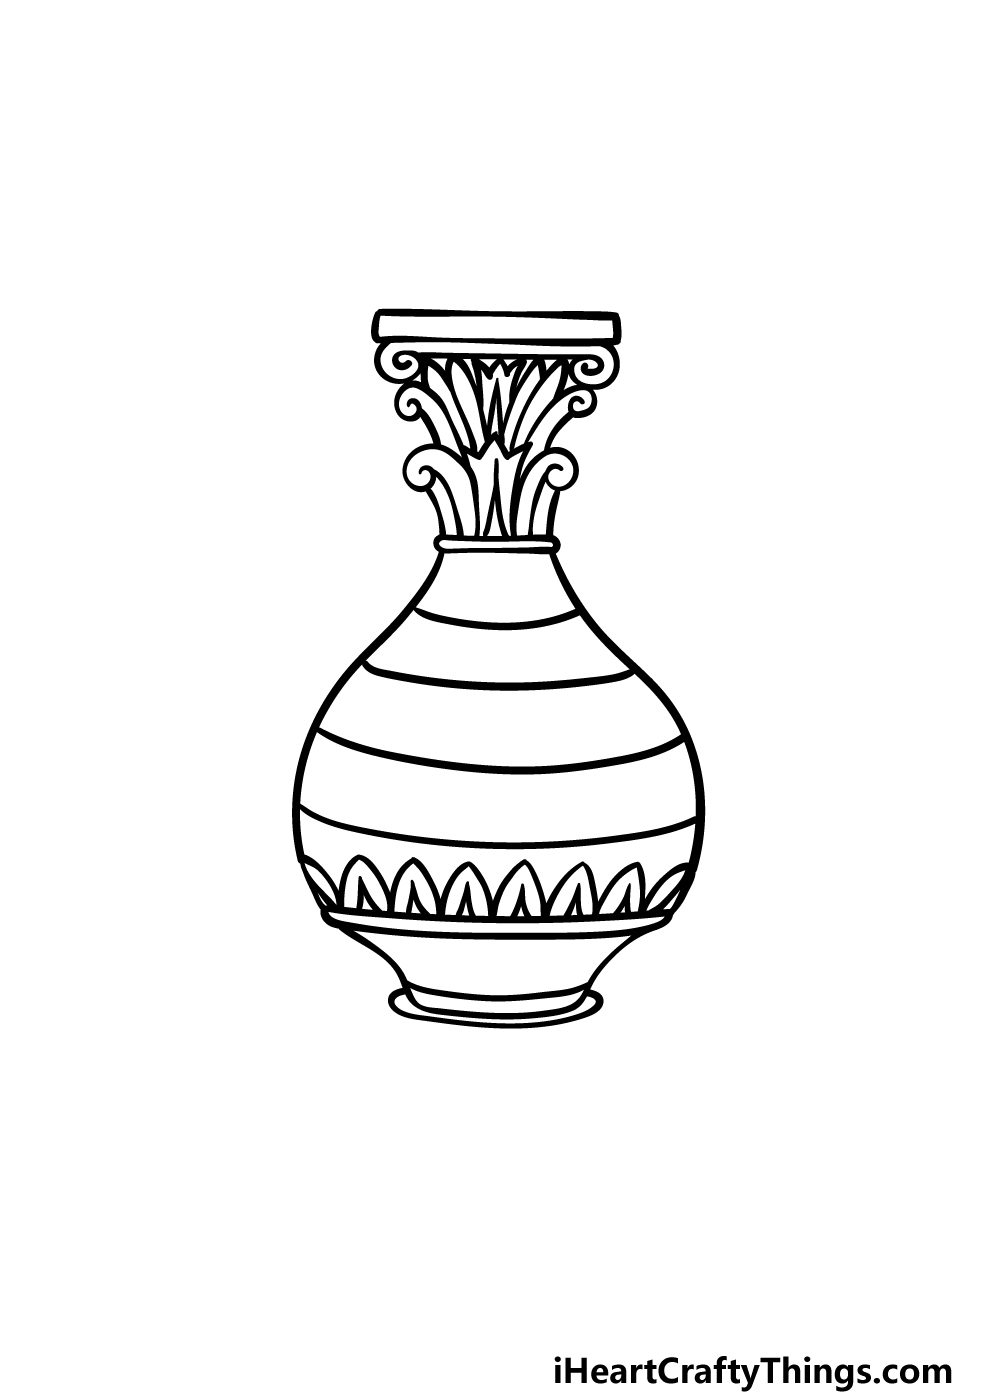 drawing a vase step 4